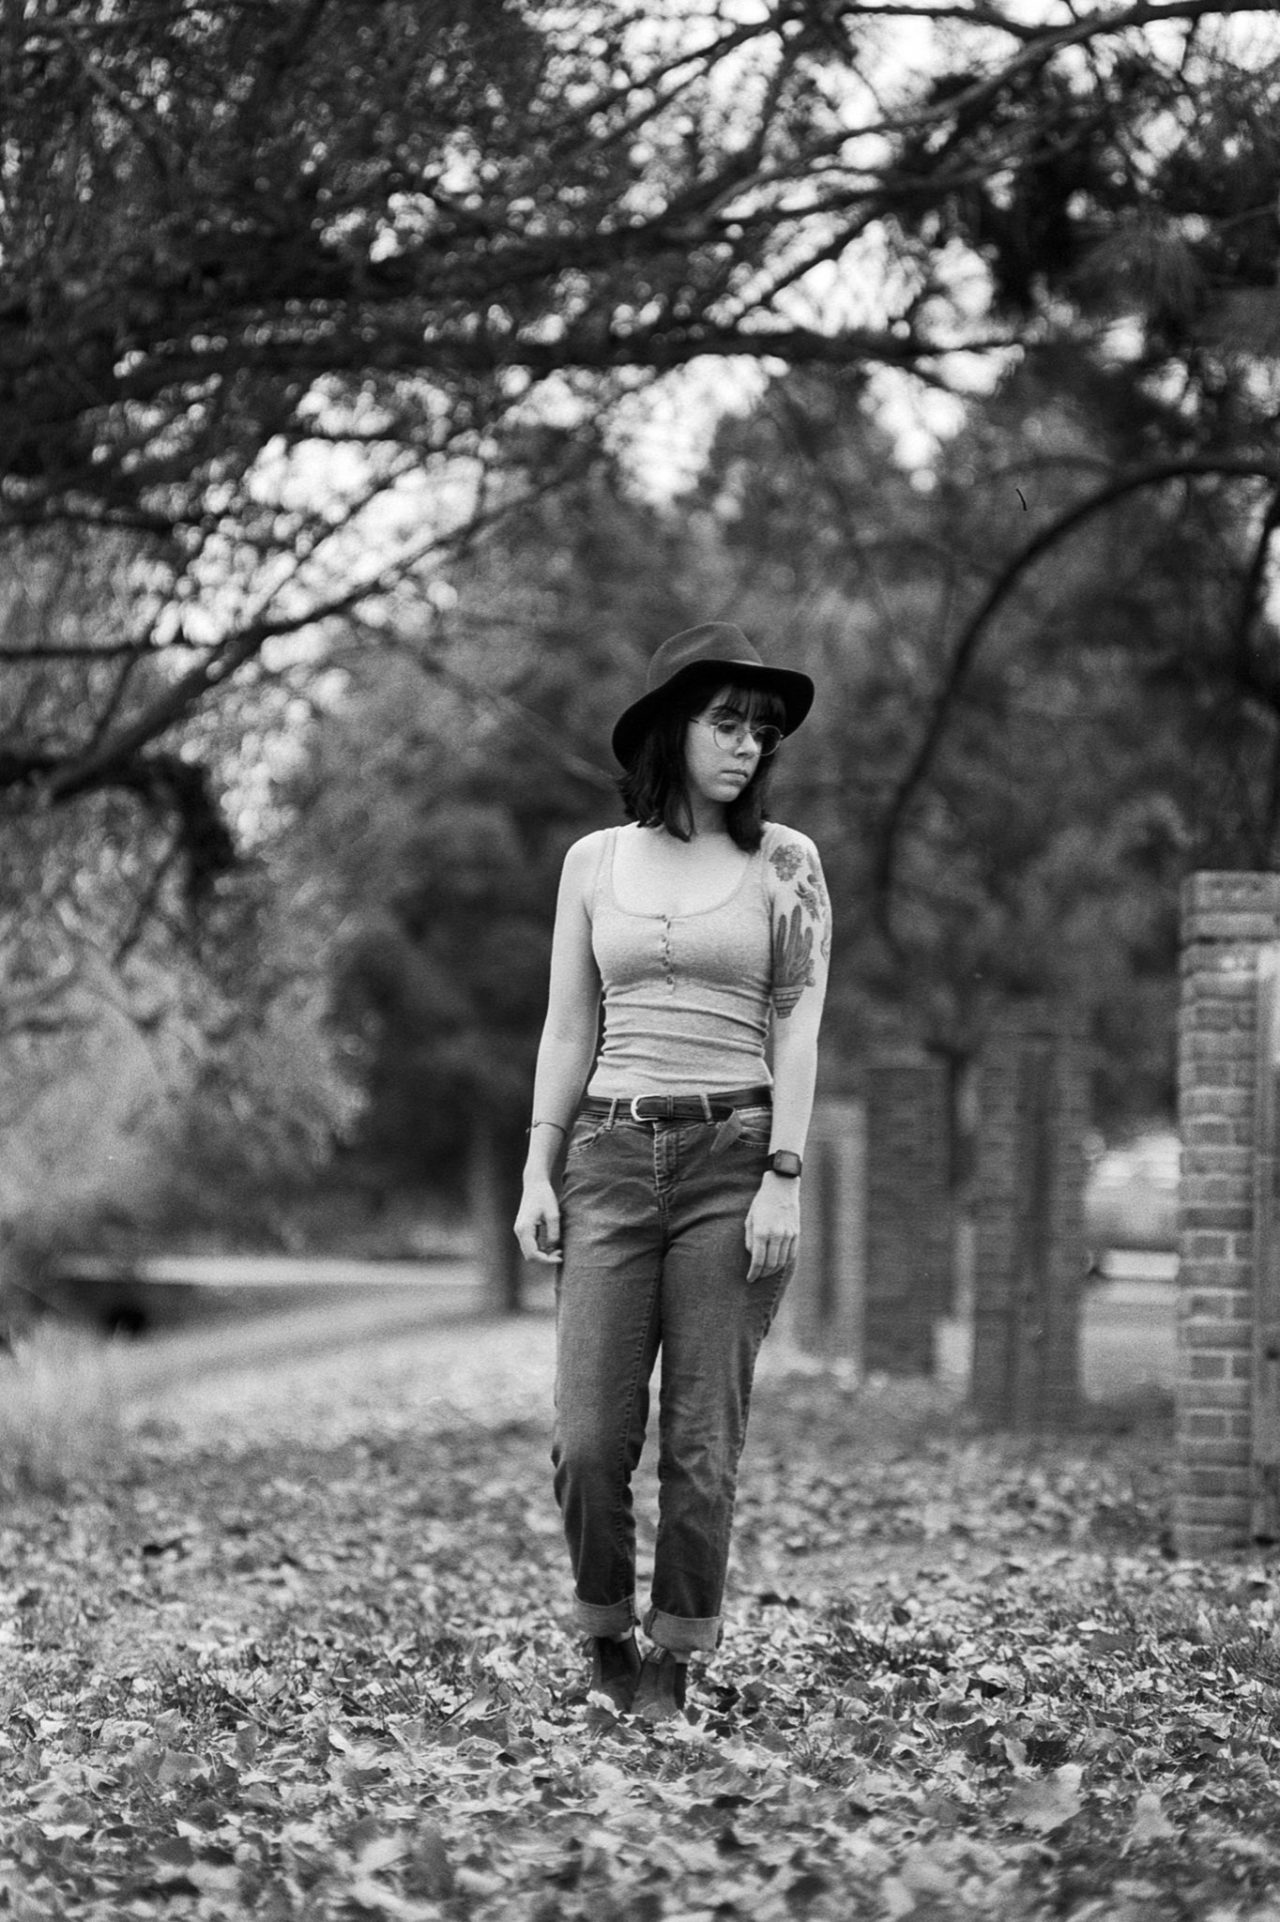 @suzlopez321 Replying to @ILFORDPhoto #filmpeople shot recently hp5!